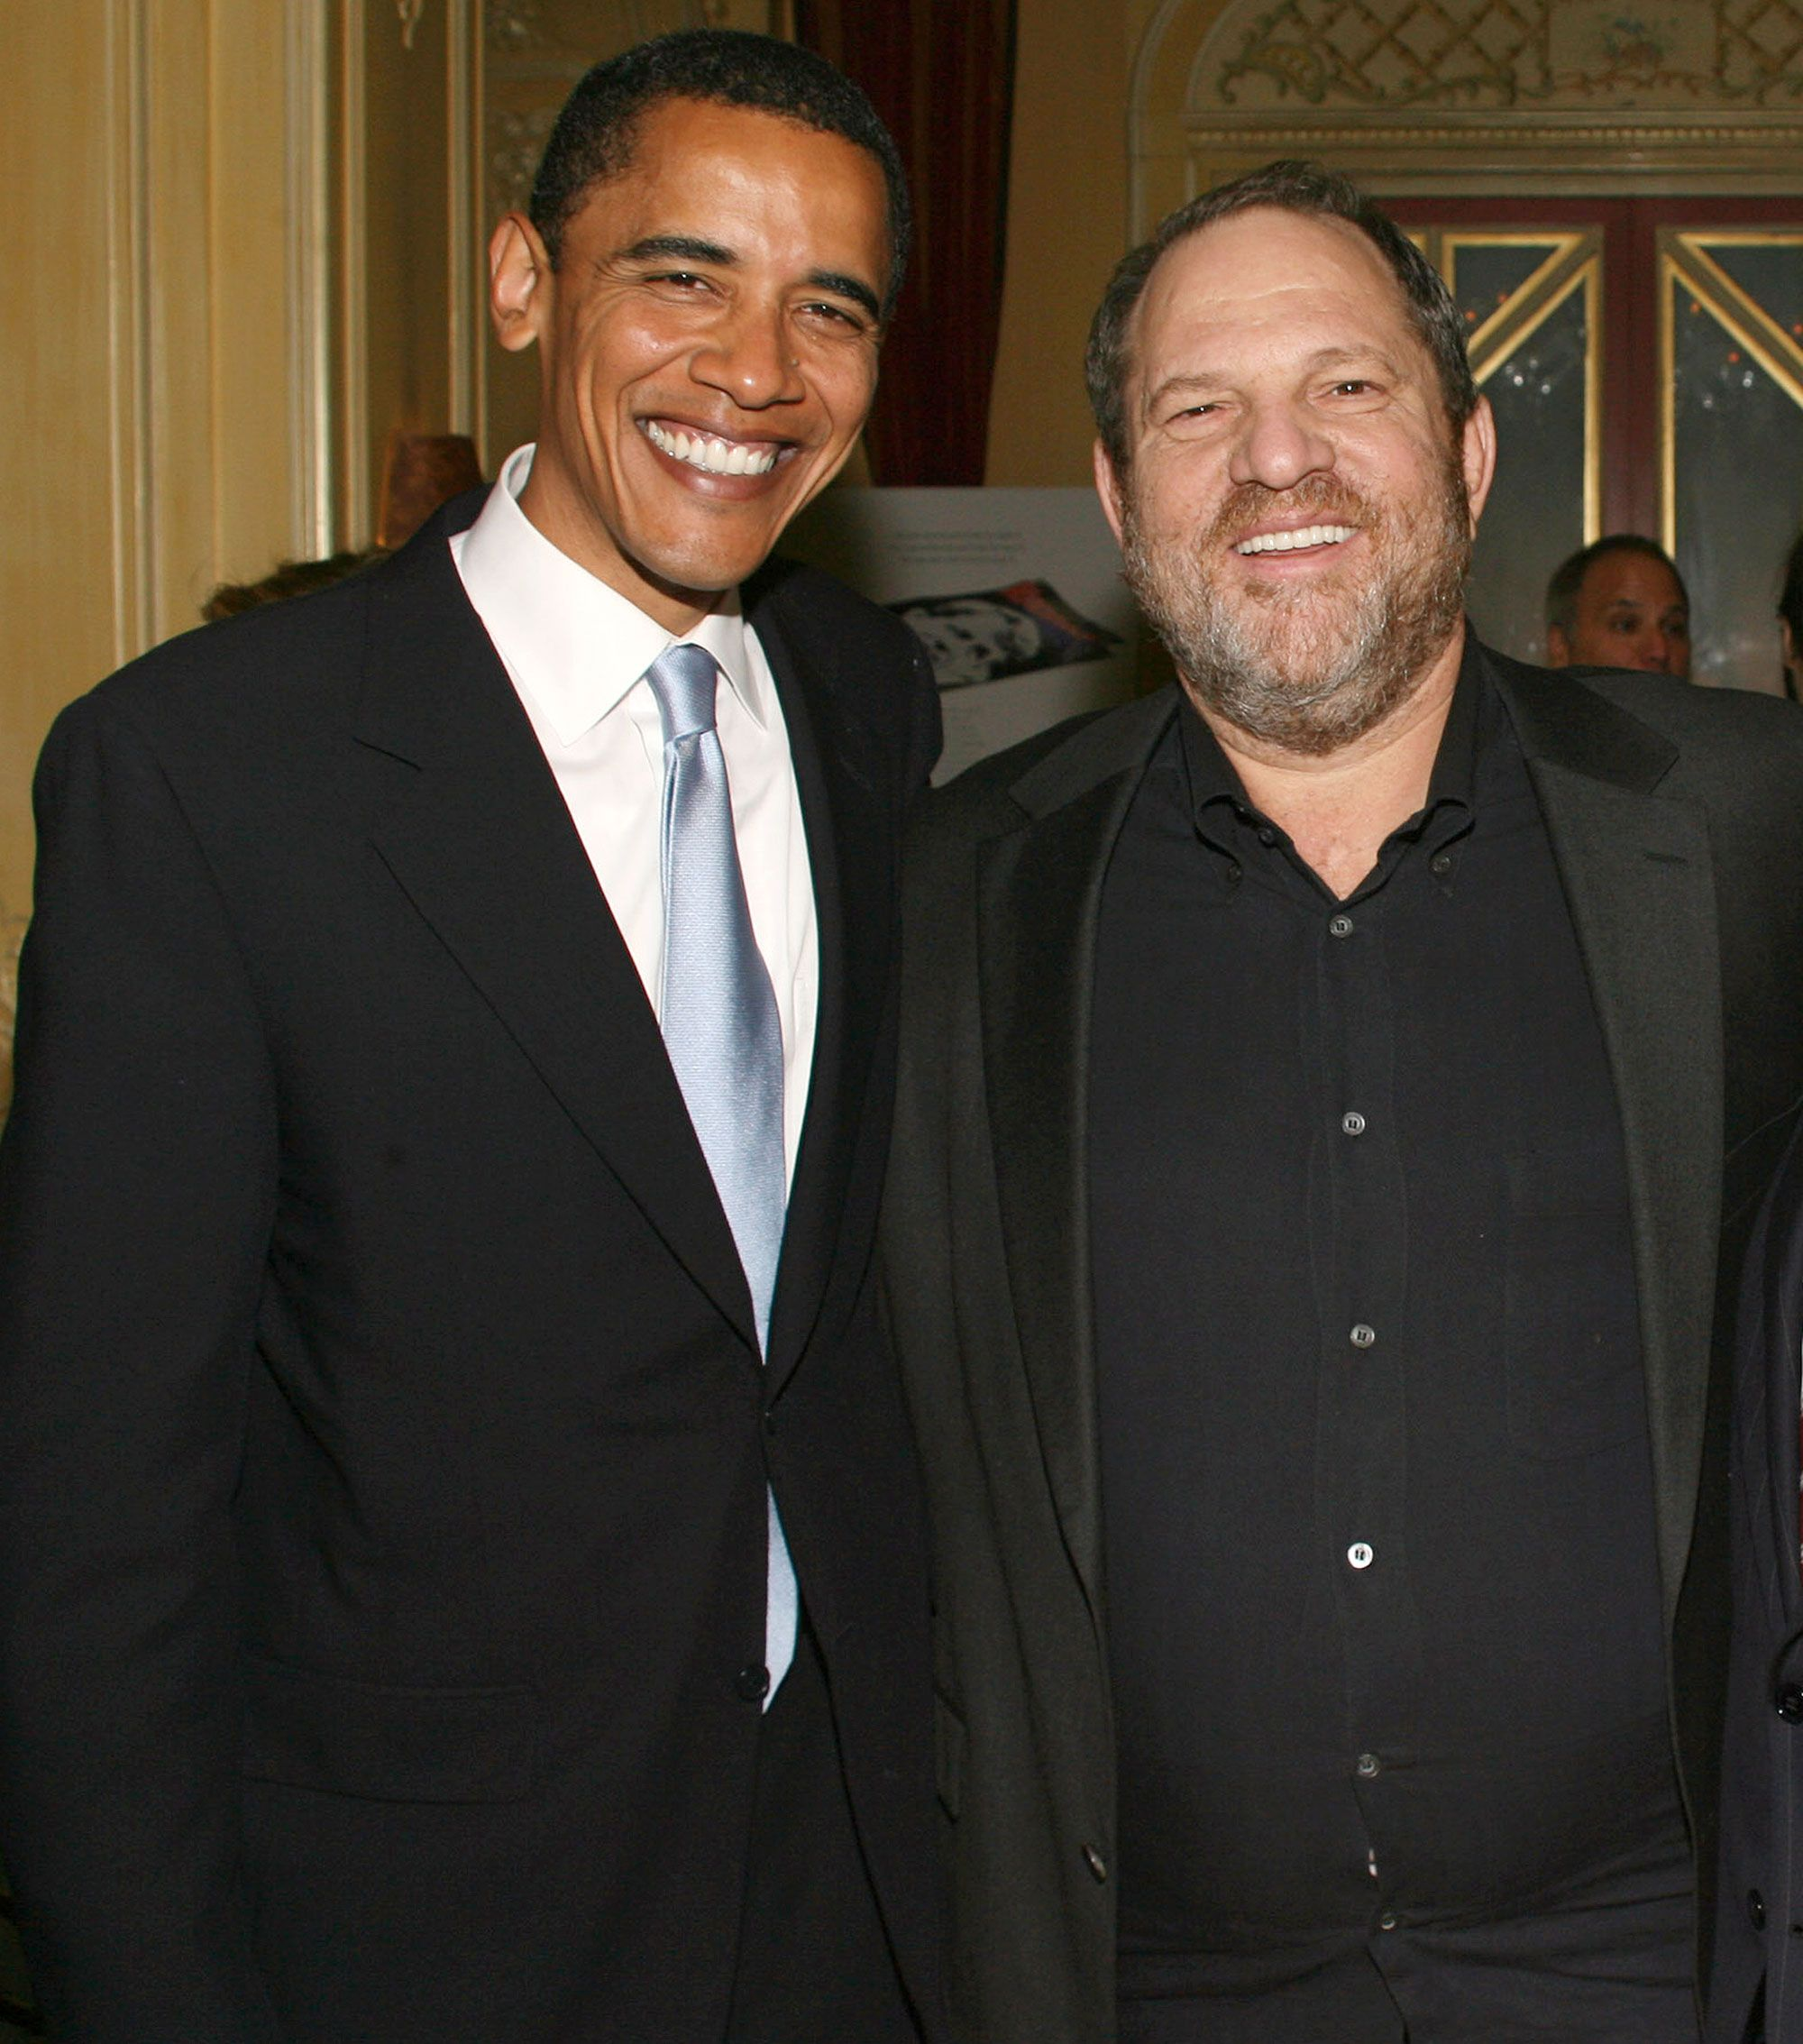 harvey-weinstein-obama.jpg